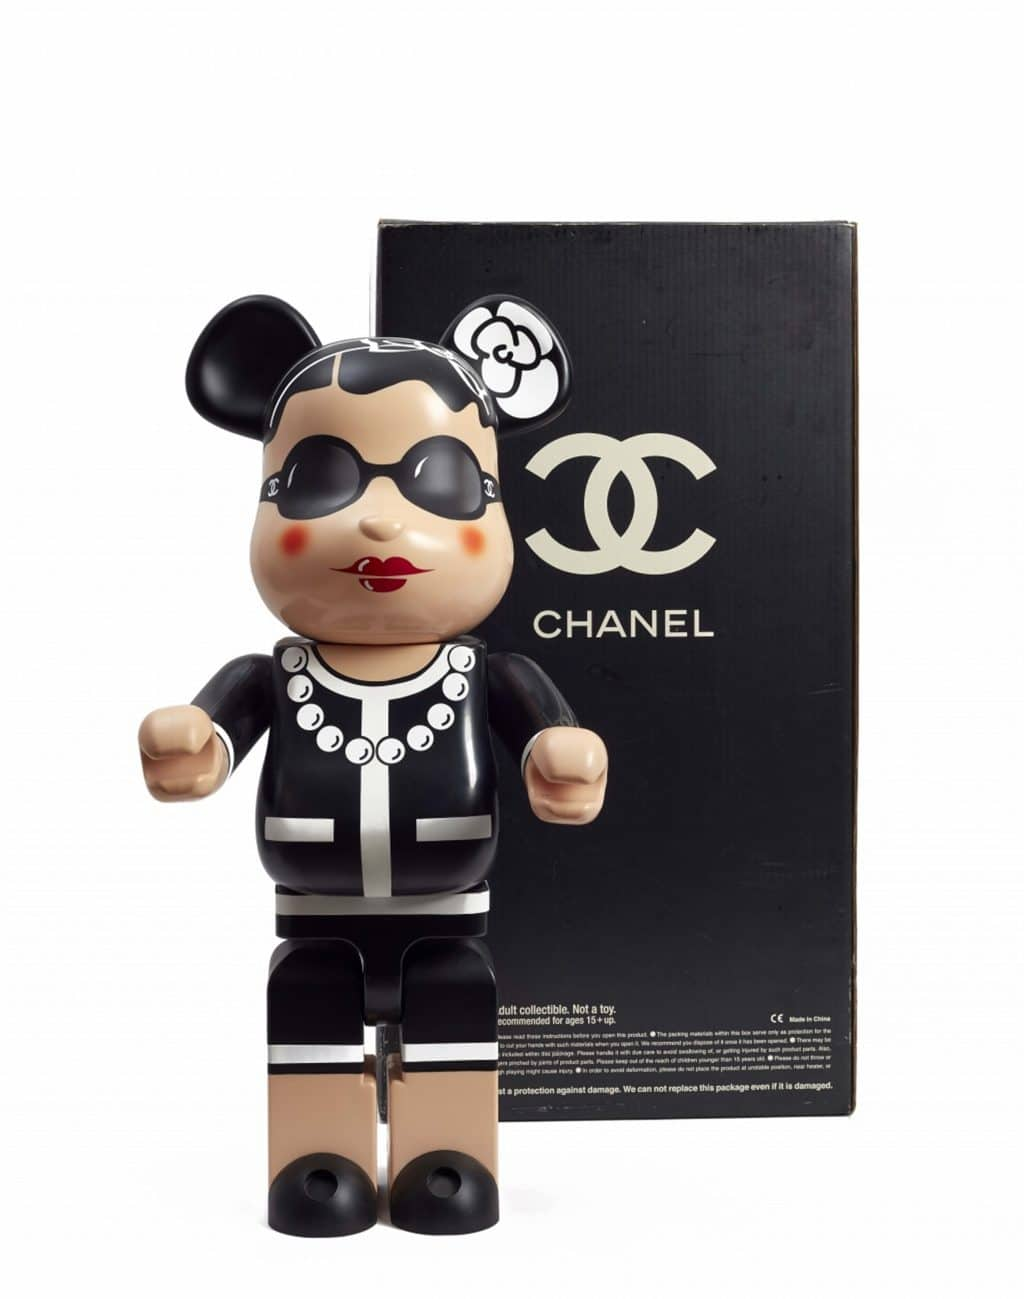 karl lagerfeld dies and his art hommage a coco the chanel poupee